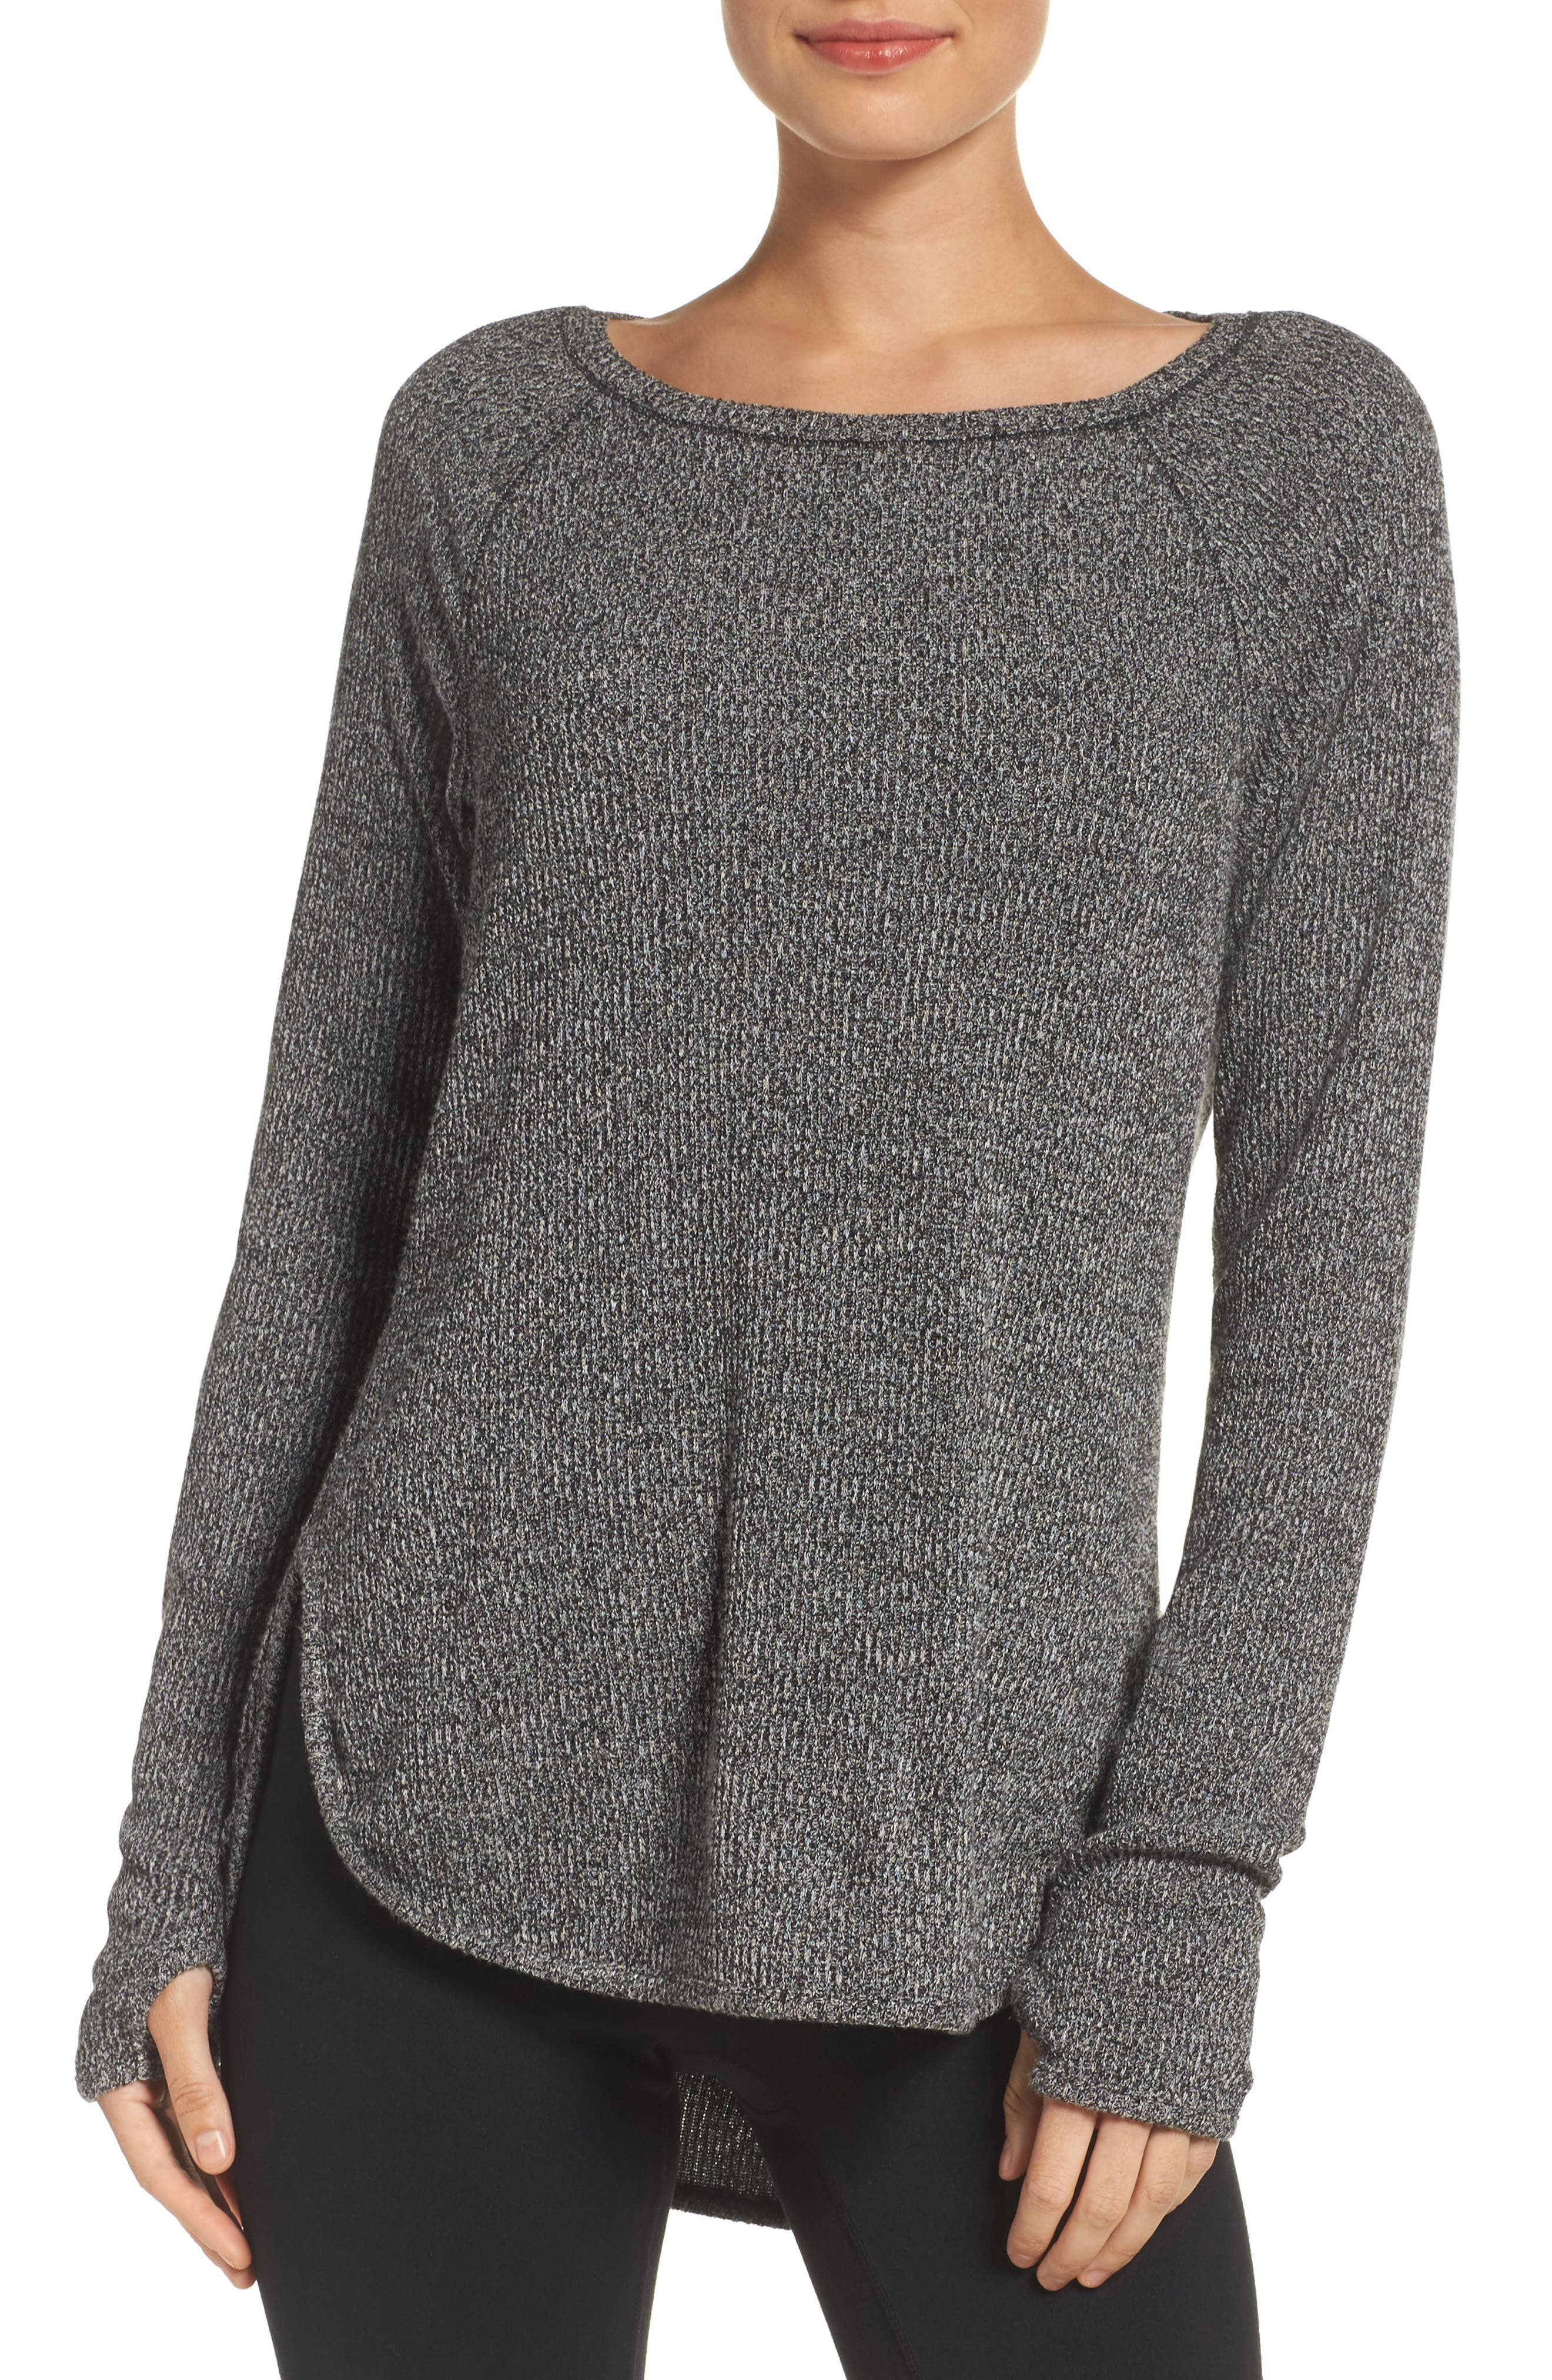 Main Image - Zella Don't Sweat It Sweater